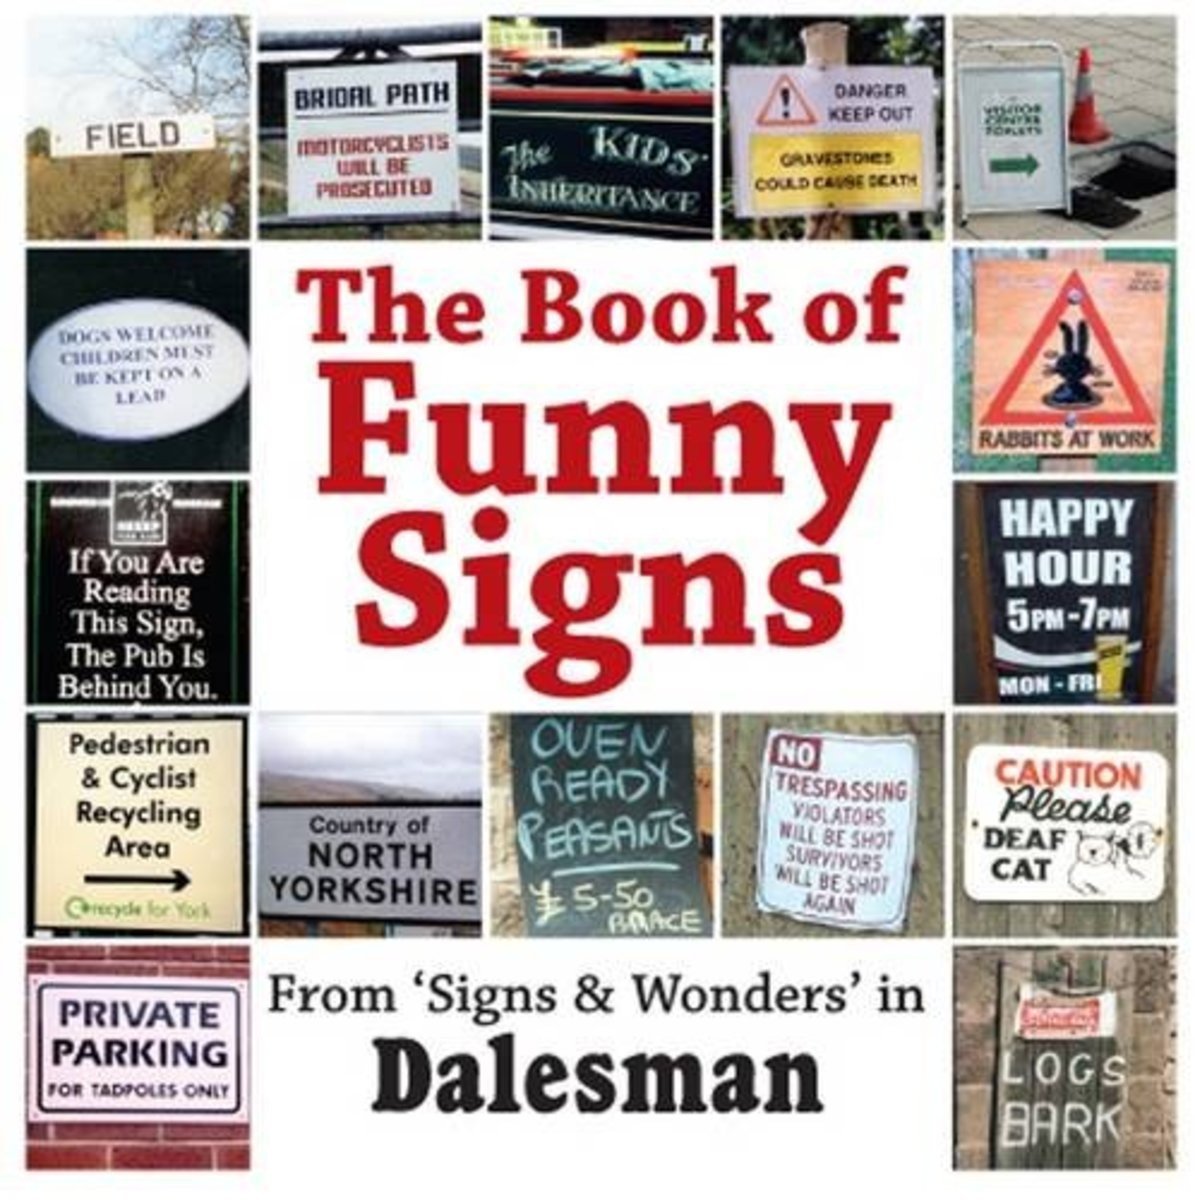 Split your sides, go on. Have a go at this one from the Dalesman press, it'll tickle you raw